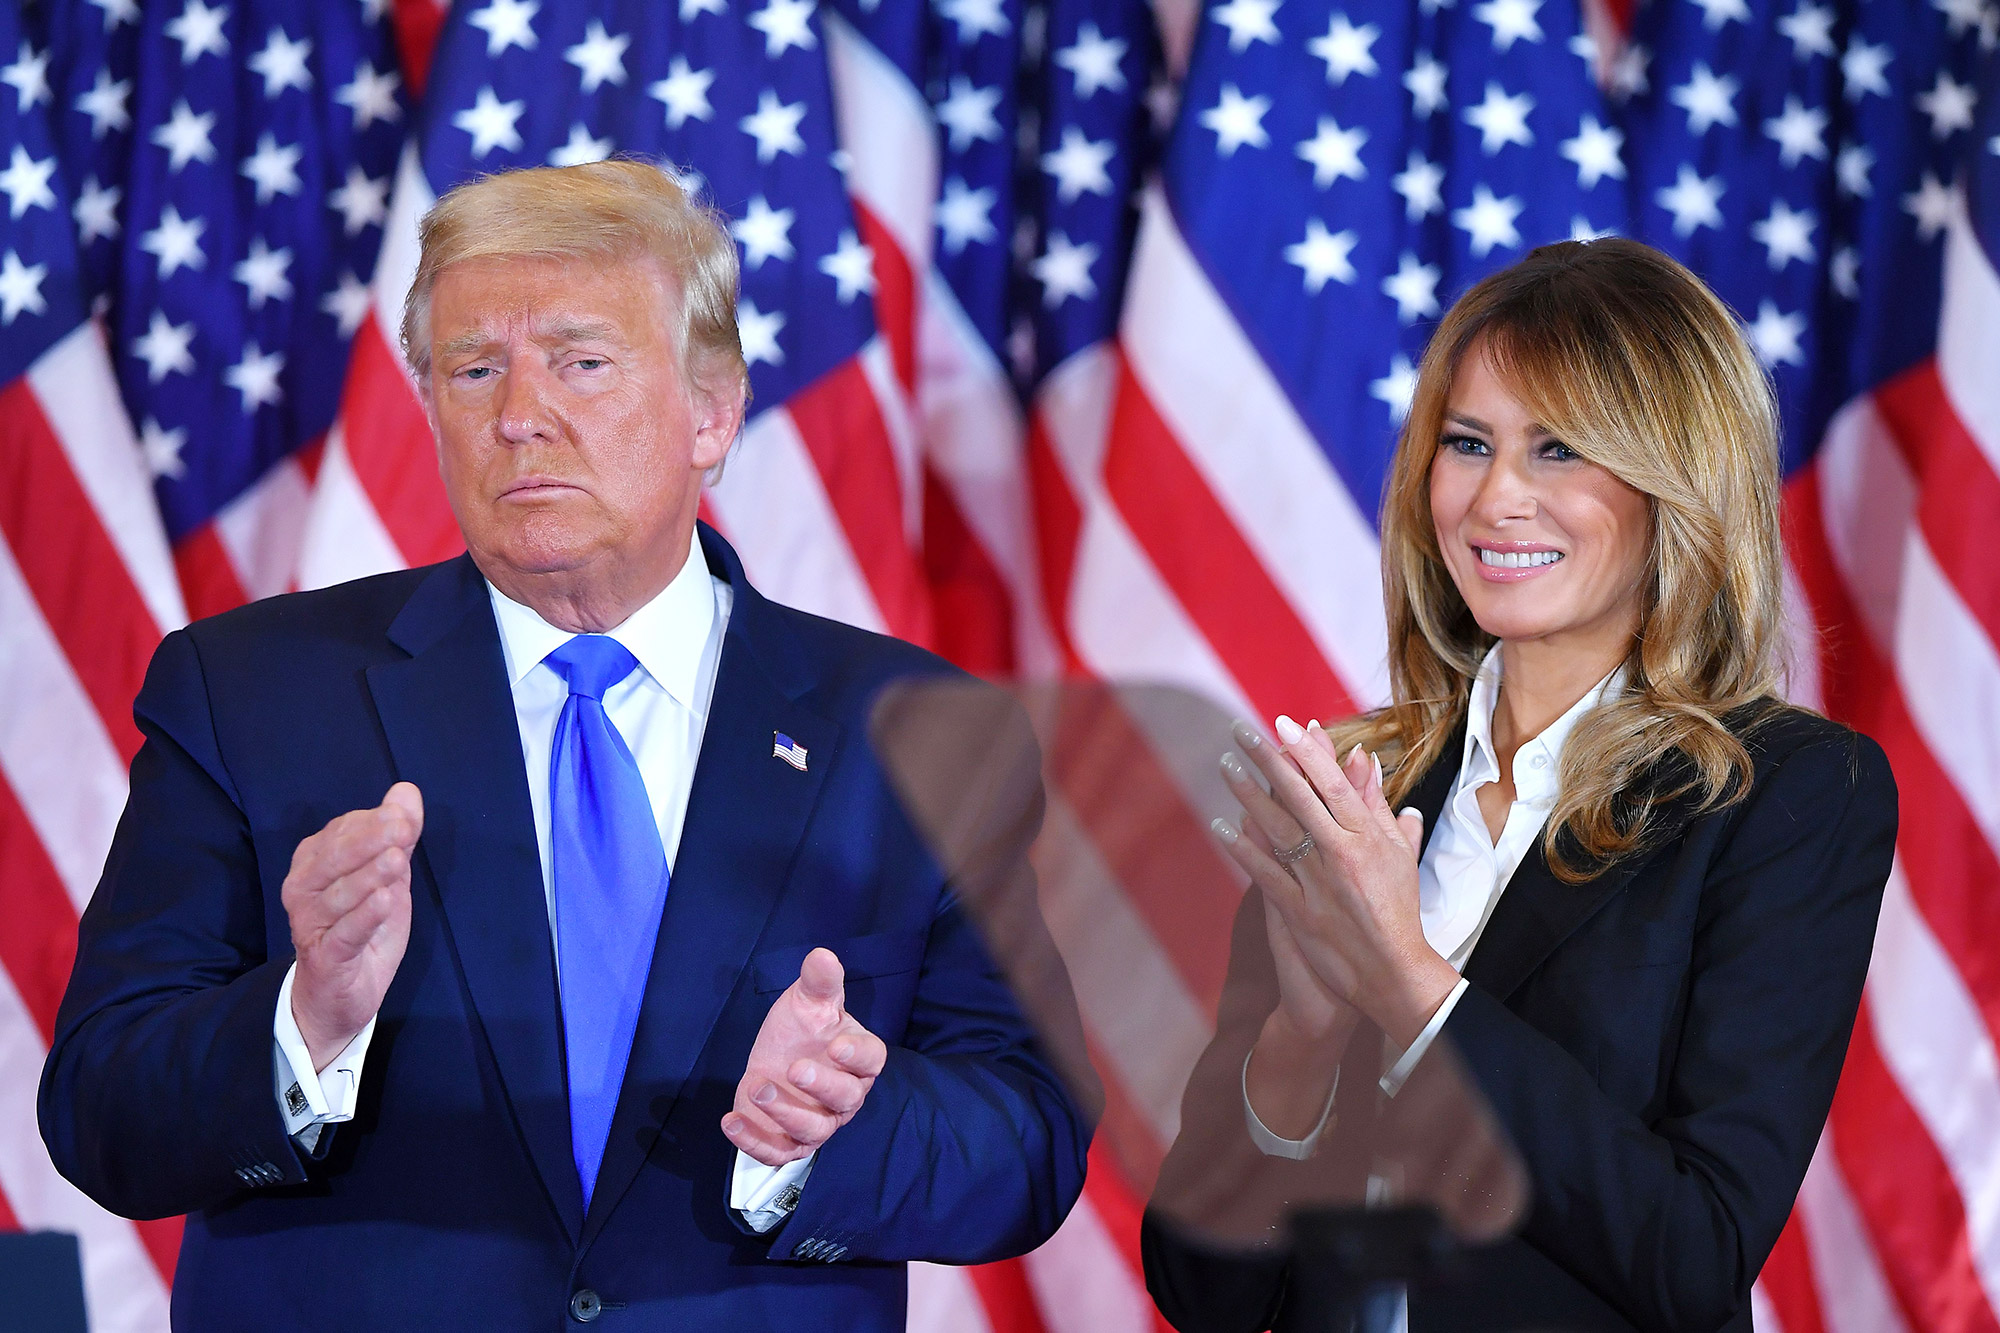 President Donald Trump claps alongside US First Lady Melania Trump after speaking during election night in the East Room of the White House in Washington, DC, early on November 4, 2020